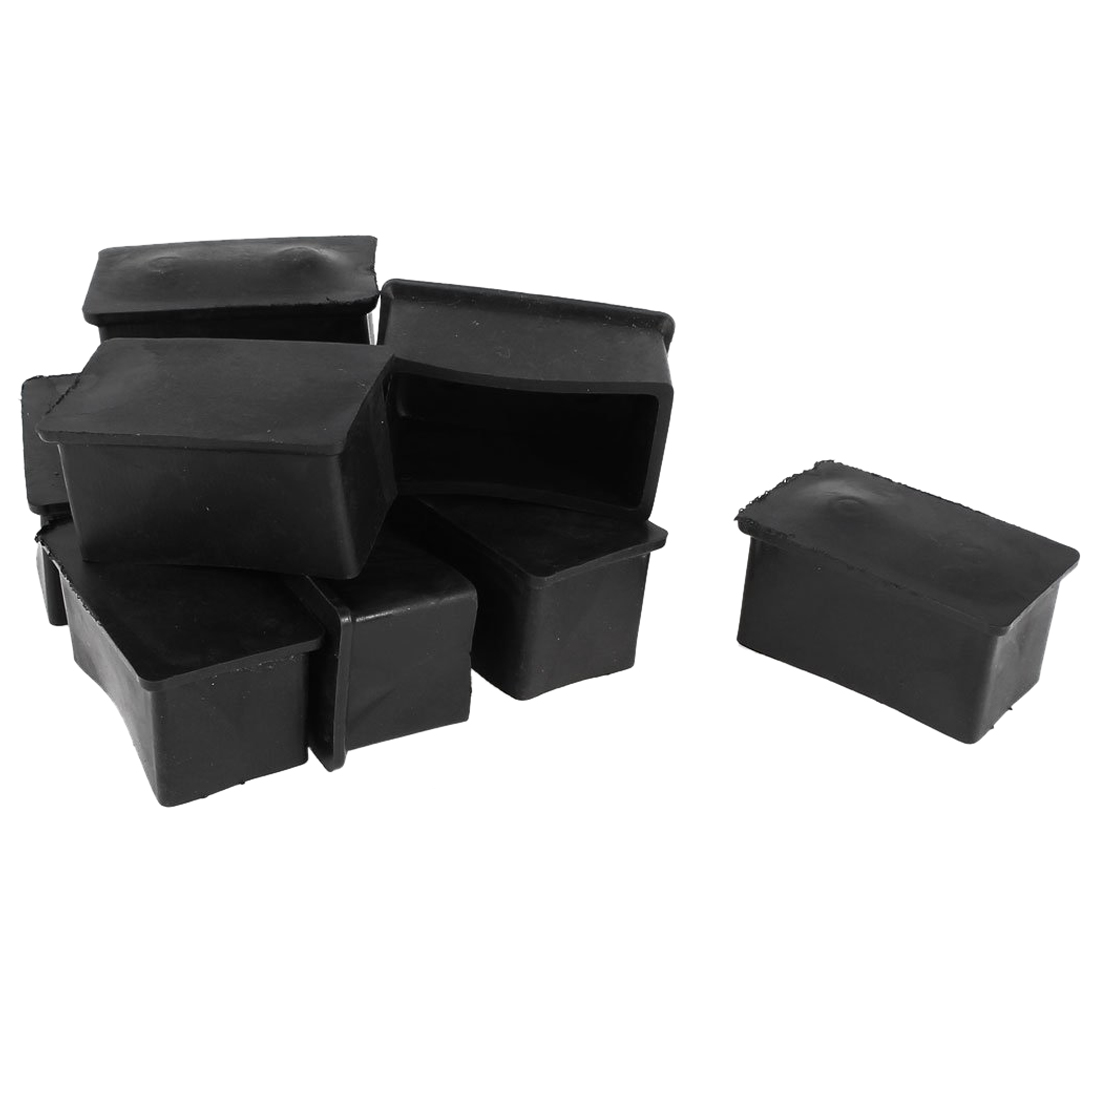 Botique Rubber Chair Table Foot Cover Furniture Leg Protectors 25x50mm 10 Pcs